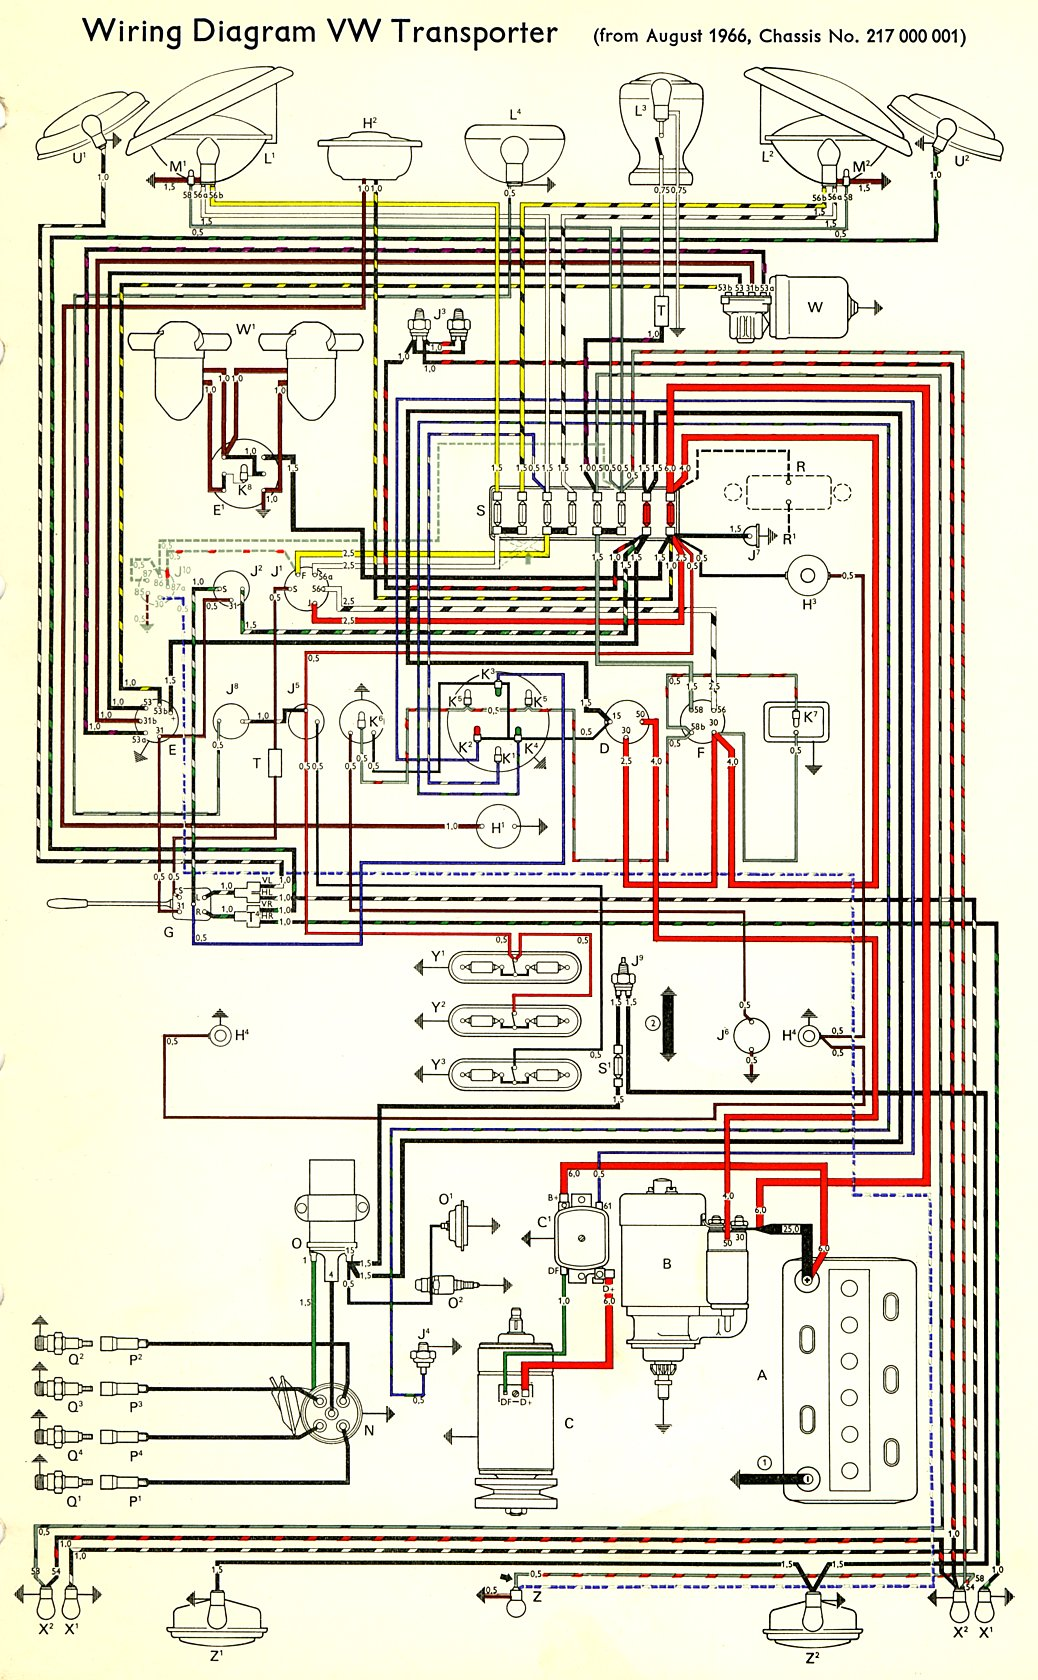 Wiring Diagram For 1967 Vw Beetle : Vw wiring diagram get free image about